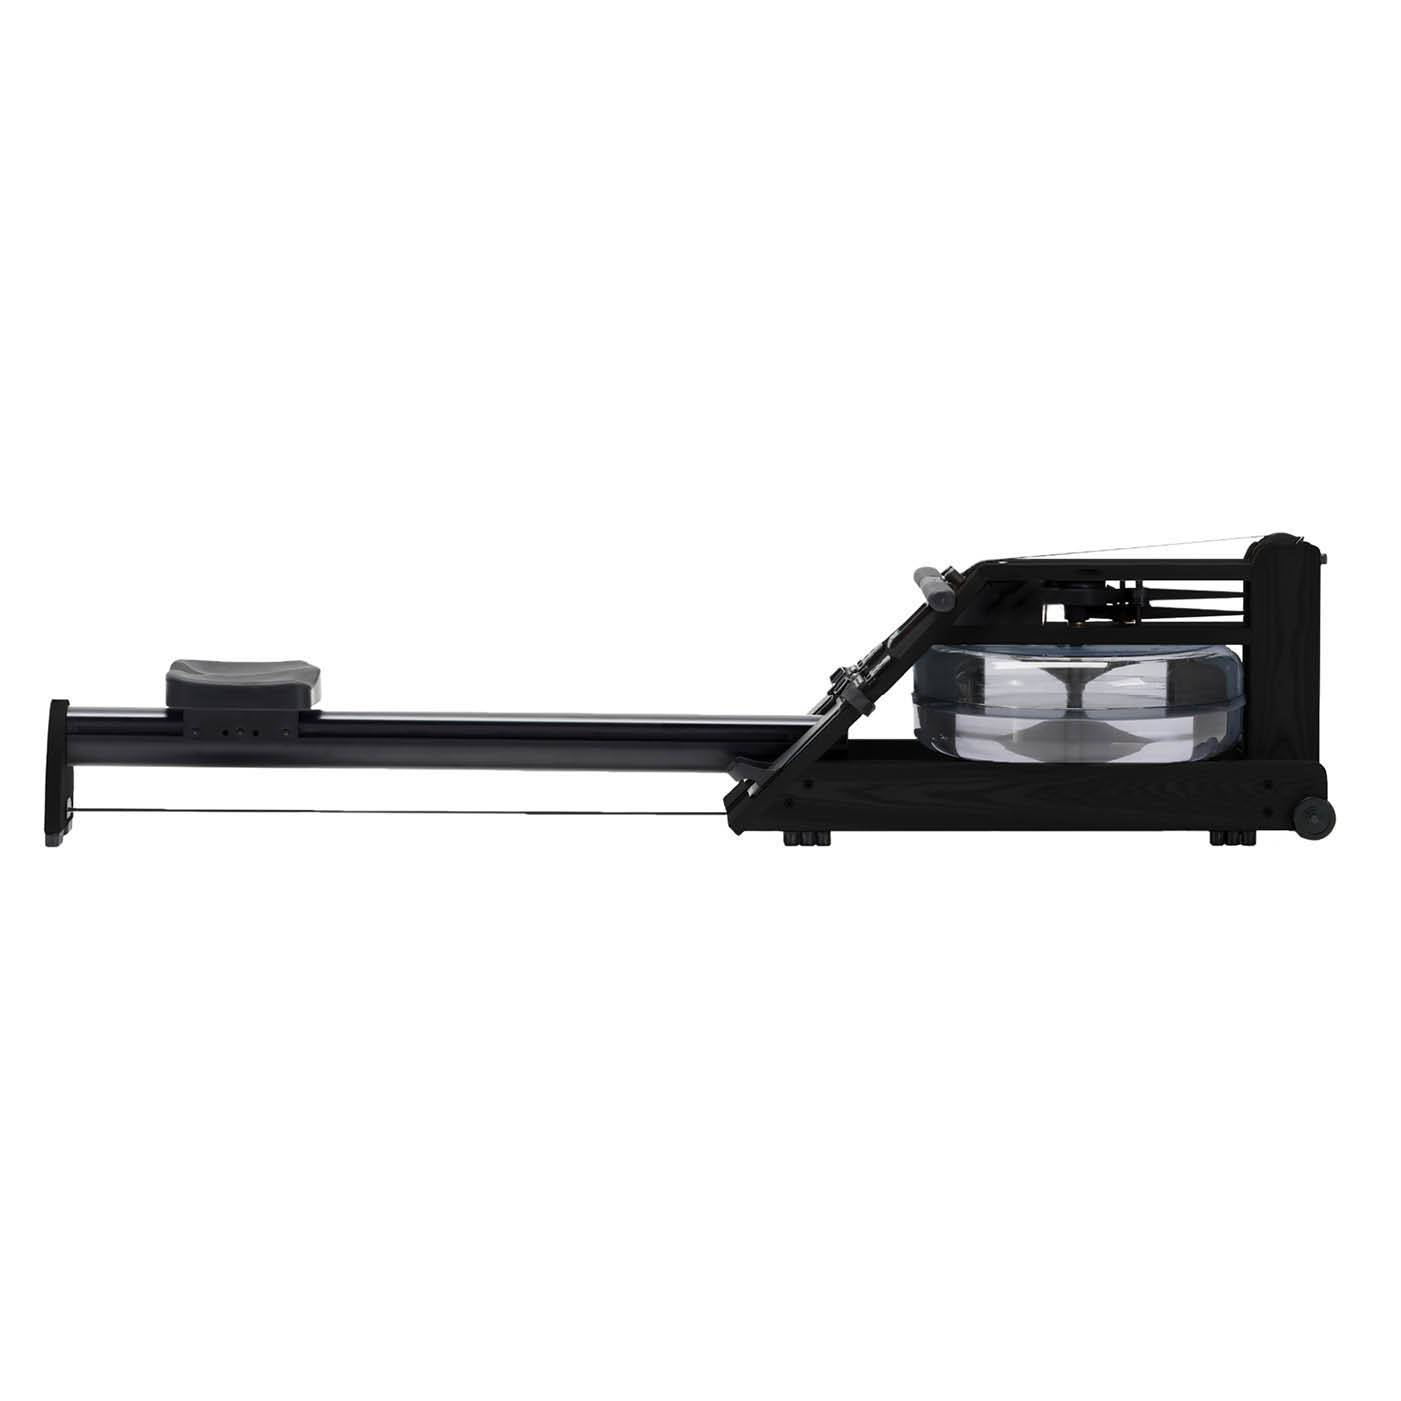 Remo Water Rower A1 Black